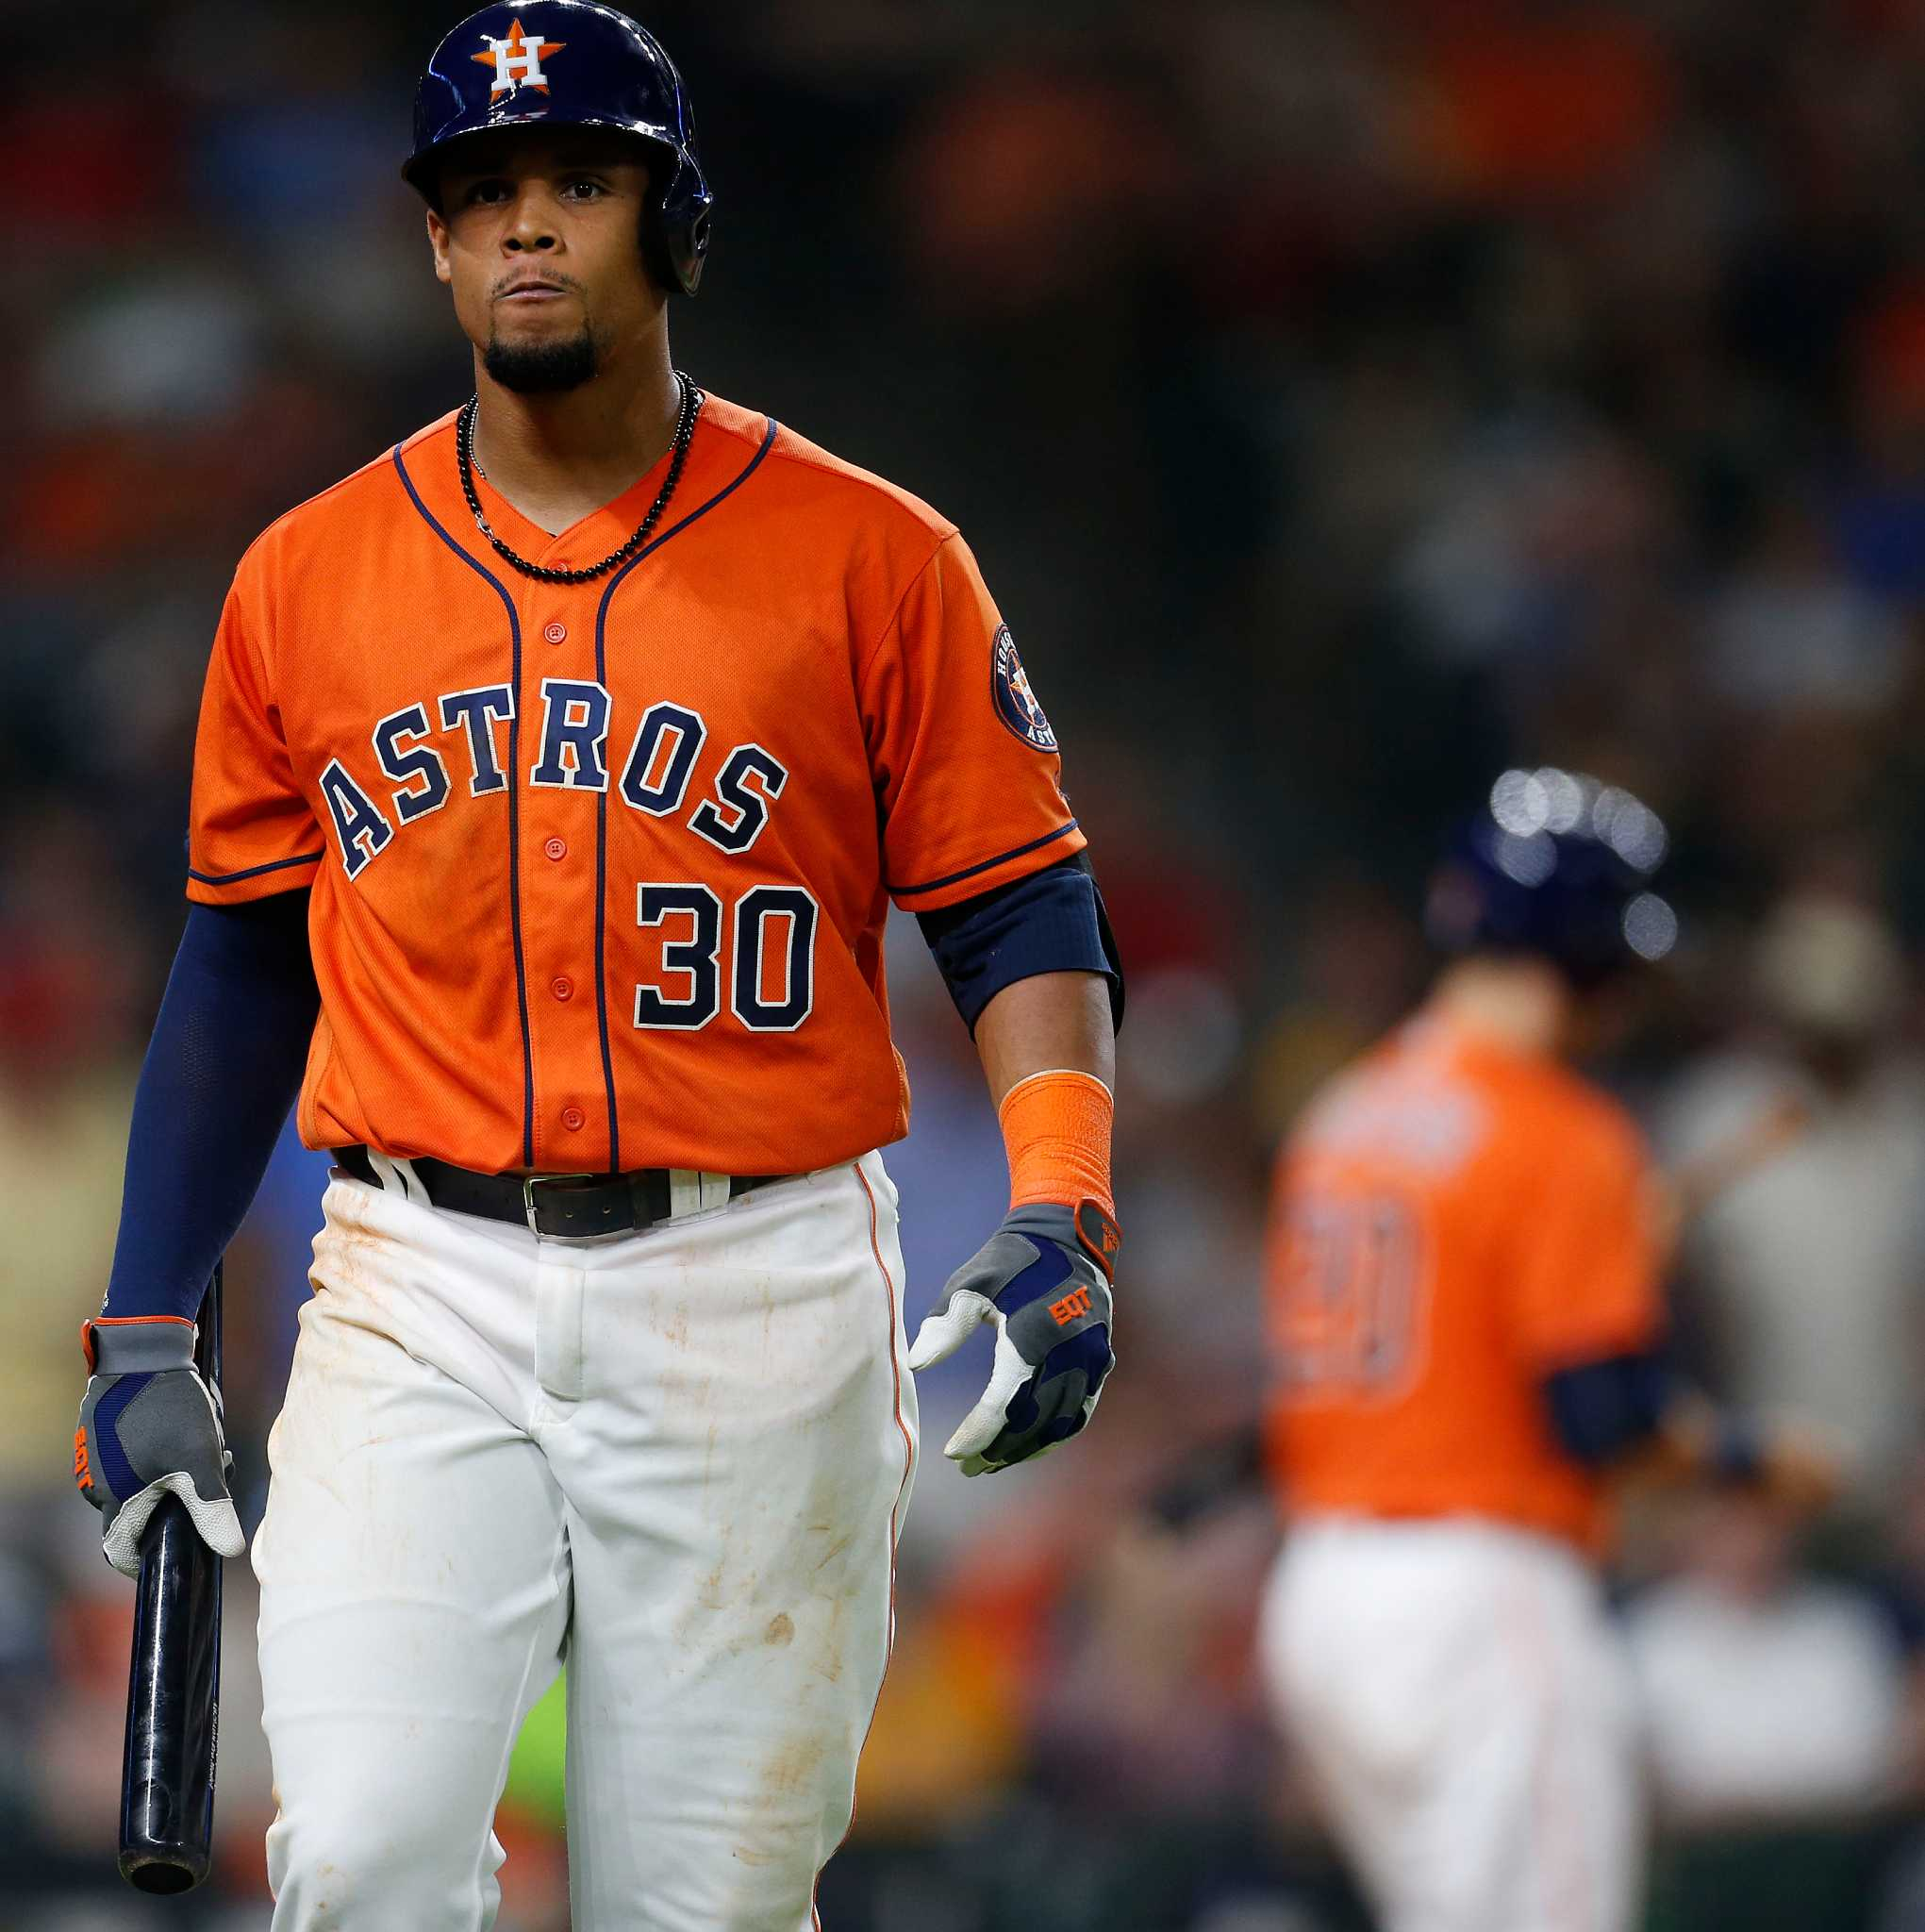 Carlos Gomez and the most disappointing Astros ...